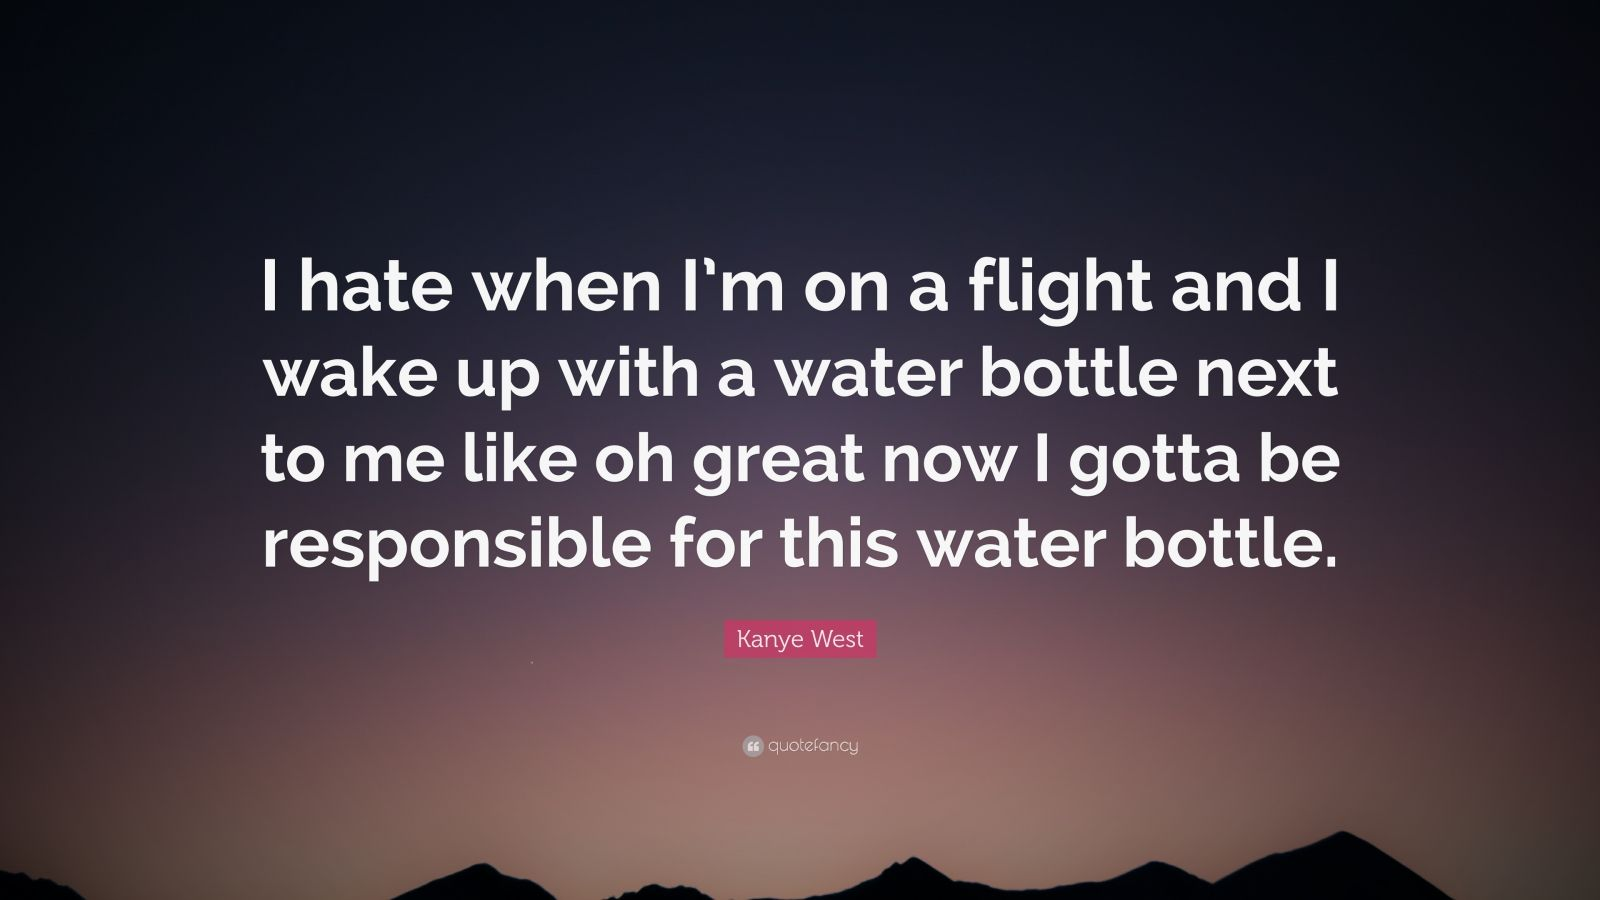 """Kanye West Quote: """"I hate when I'm on a flight and I wake up with a water bottle next to me like oh great now I gotta be responsible for this water bottle."""""""